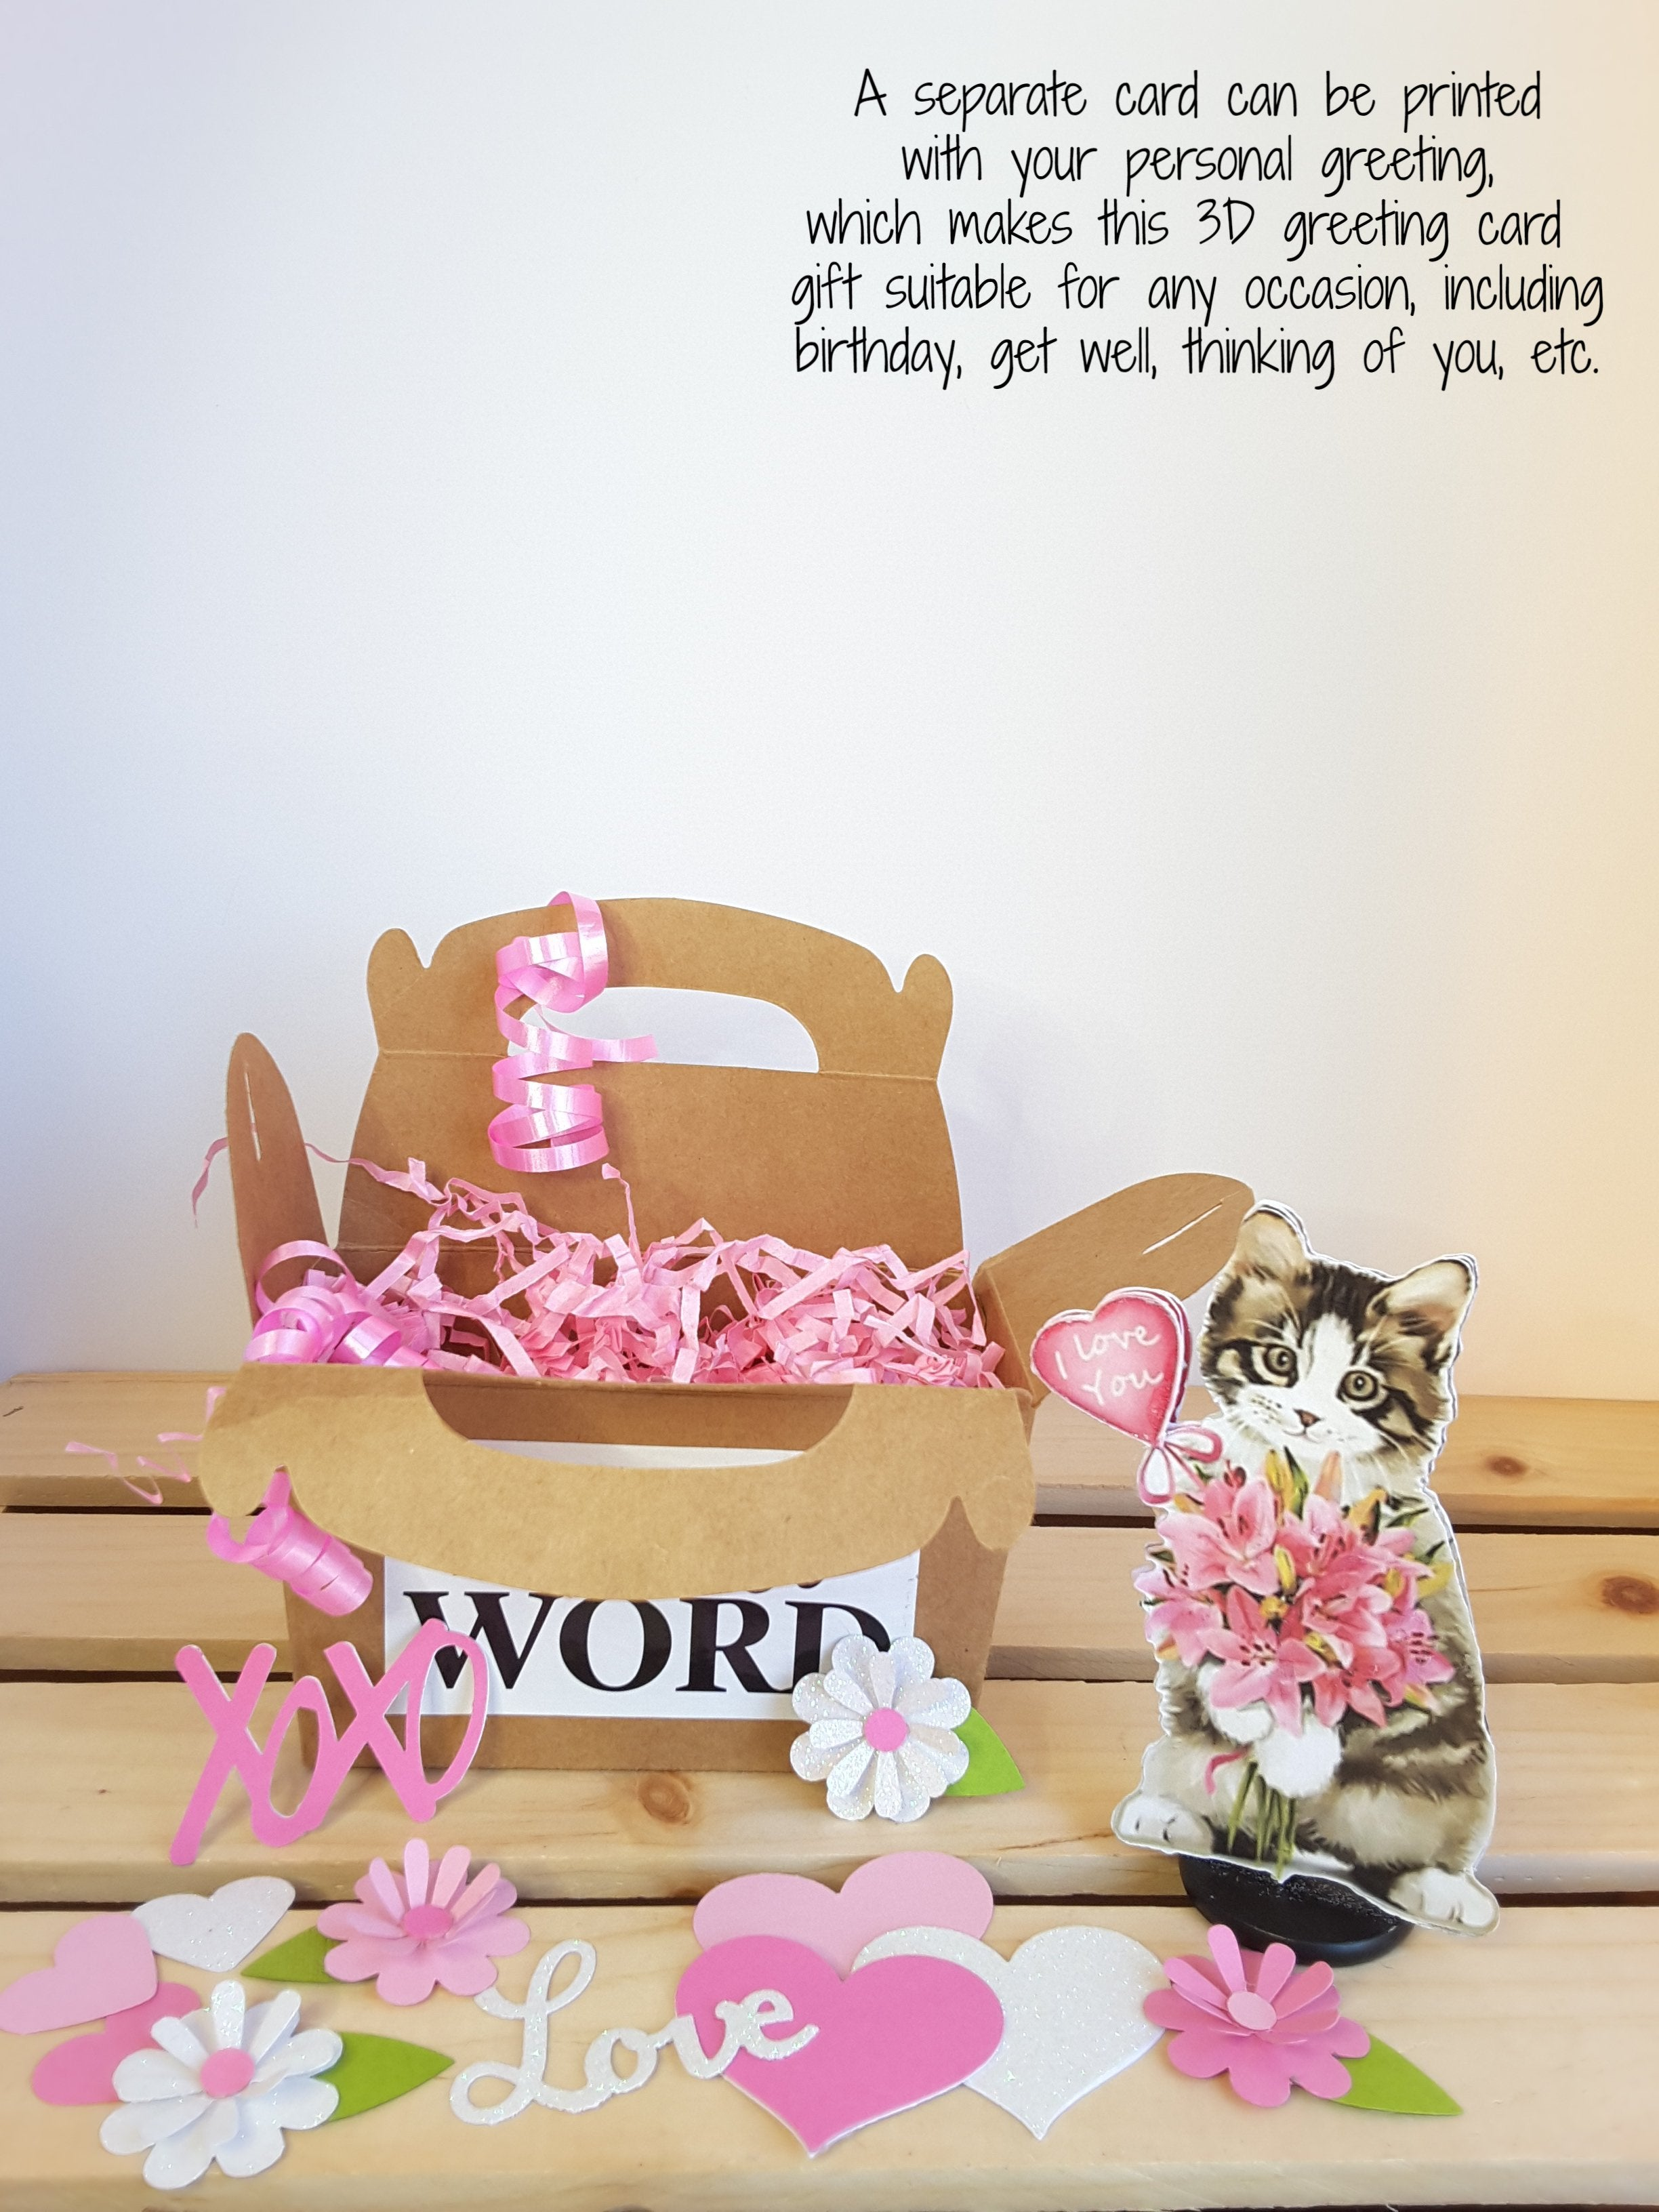 3-D kitten with flowers, gift box and confetti